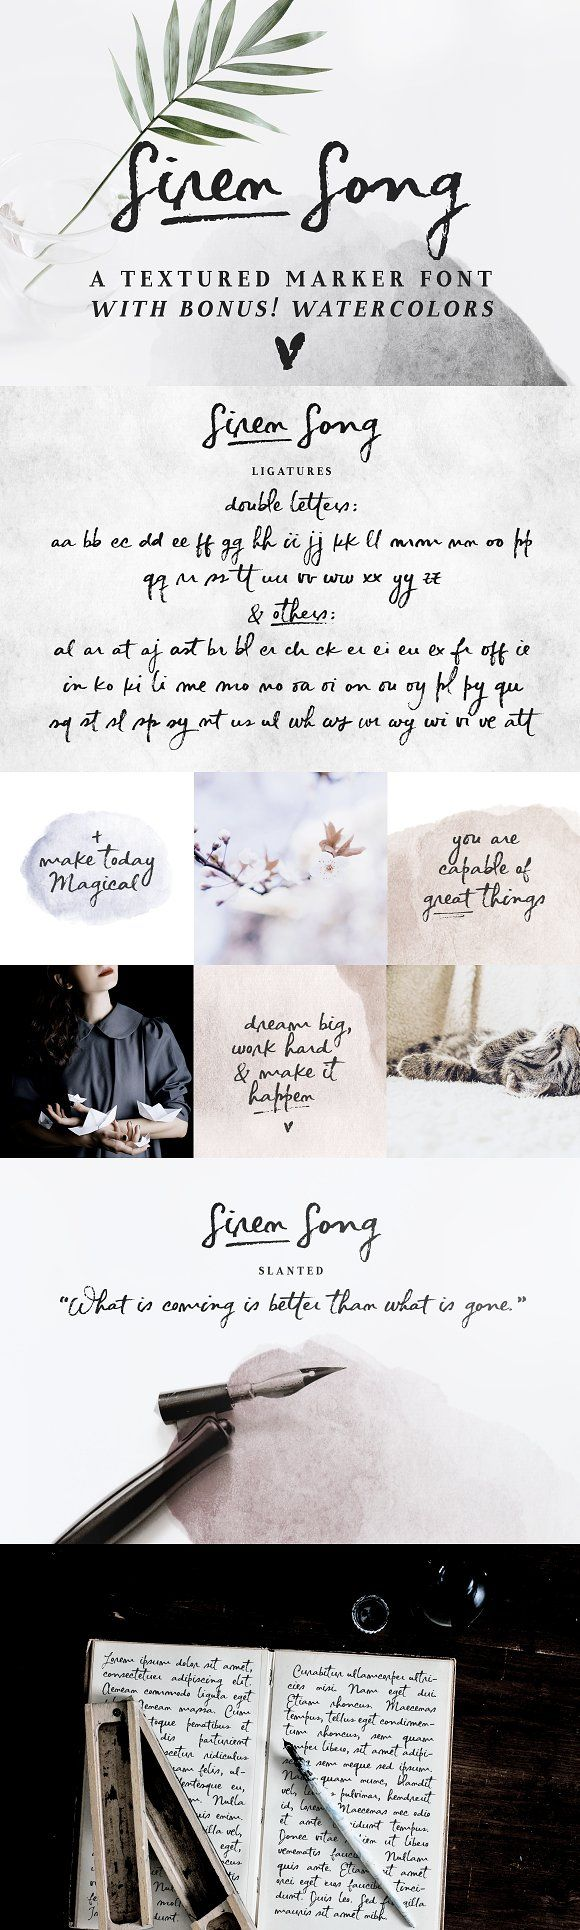 Siren Song | a handwritten font  @creativework247